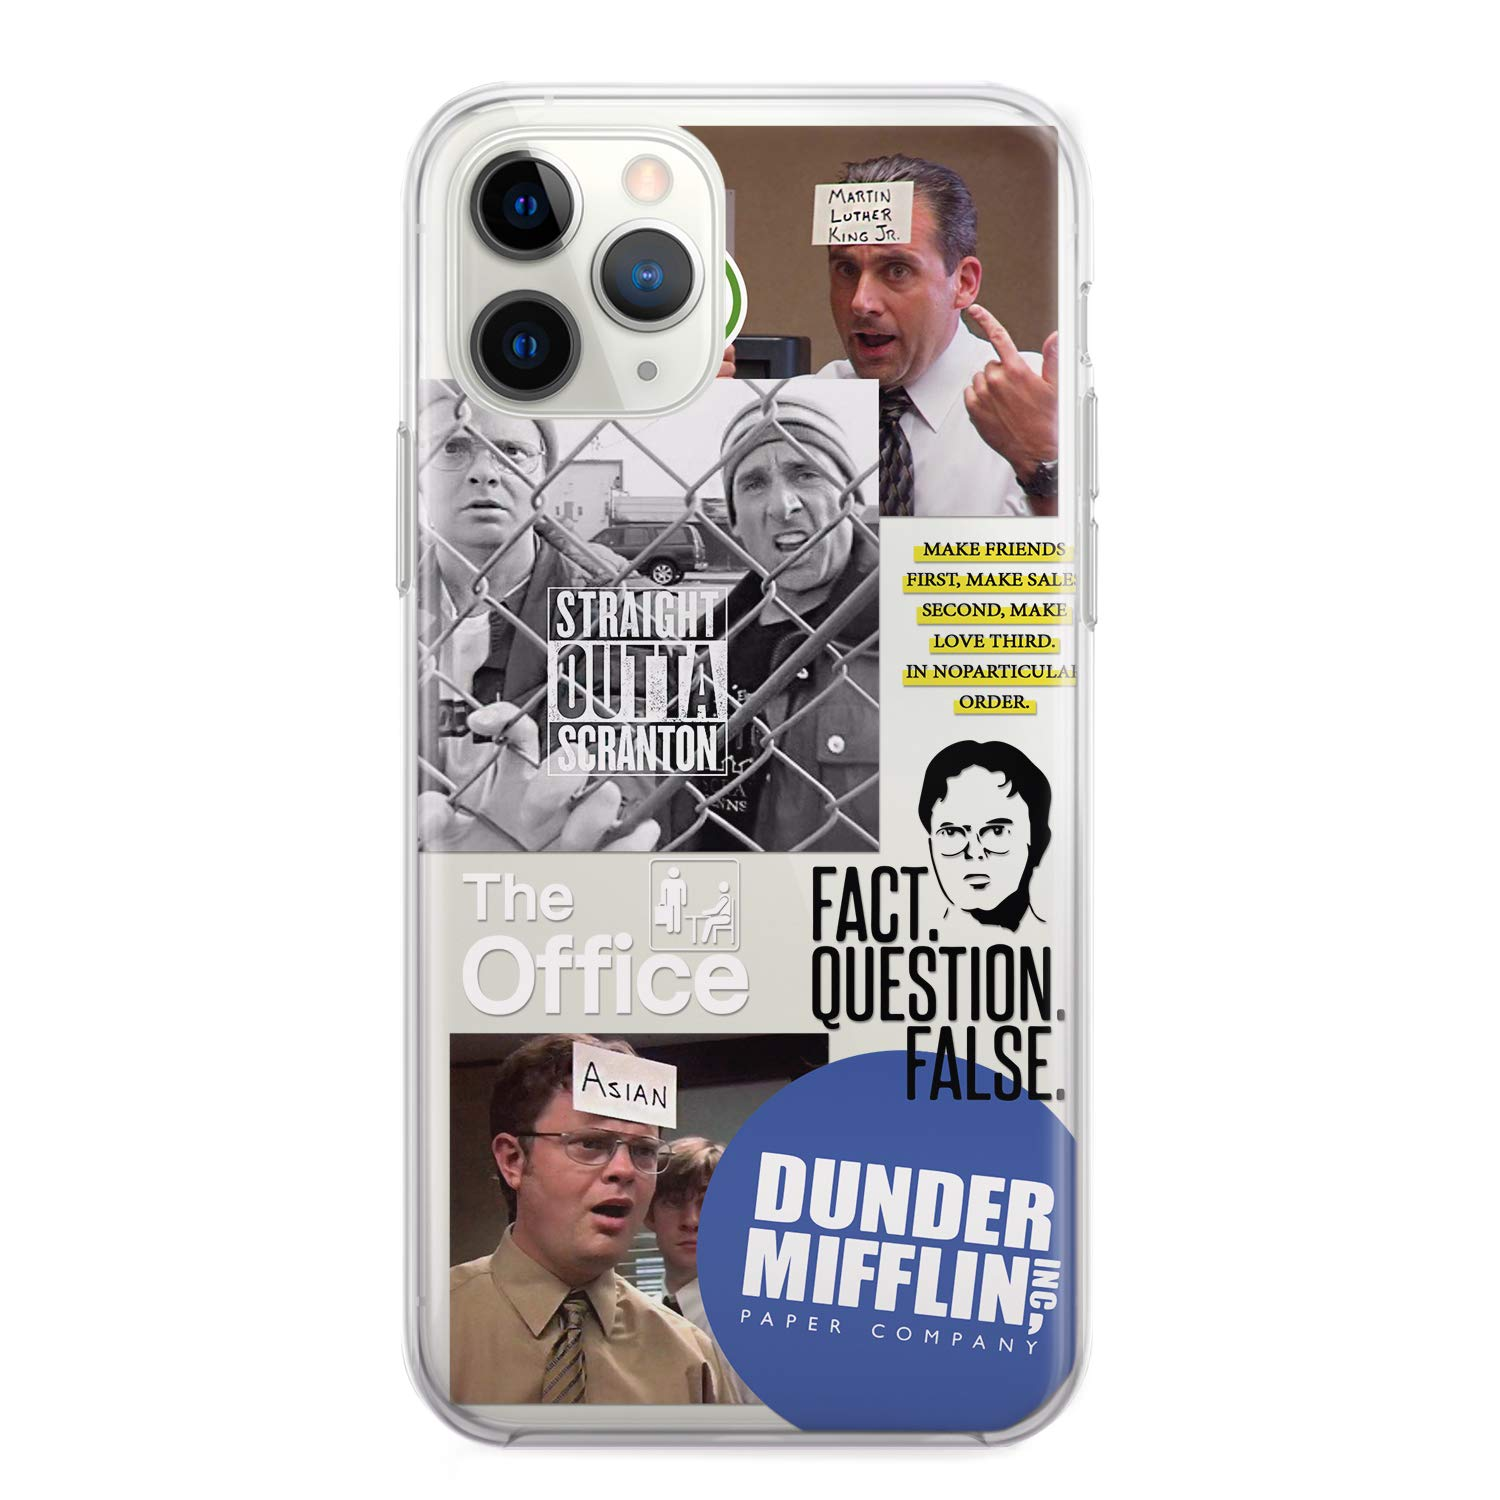 Dunder Mifflin Phone Case Merchandise for iPhone 10 X R X Xr 11 Pro Xs Max SE 2020 8 7 6s 6 Plus Cover Fact False Dwight Schrute The Office Farms Beets Tv Show Gifts Michael Scott mug Cell Clear Cover